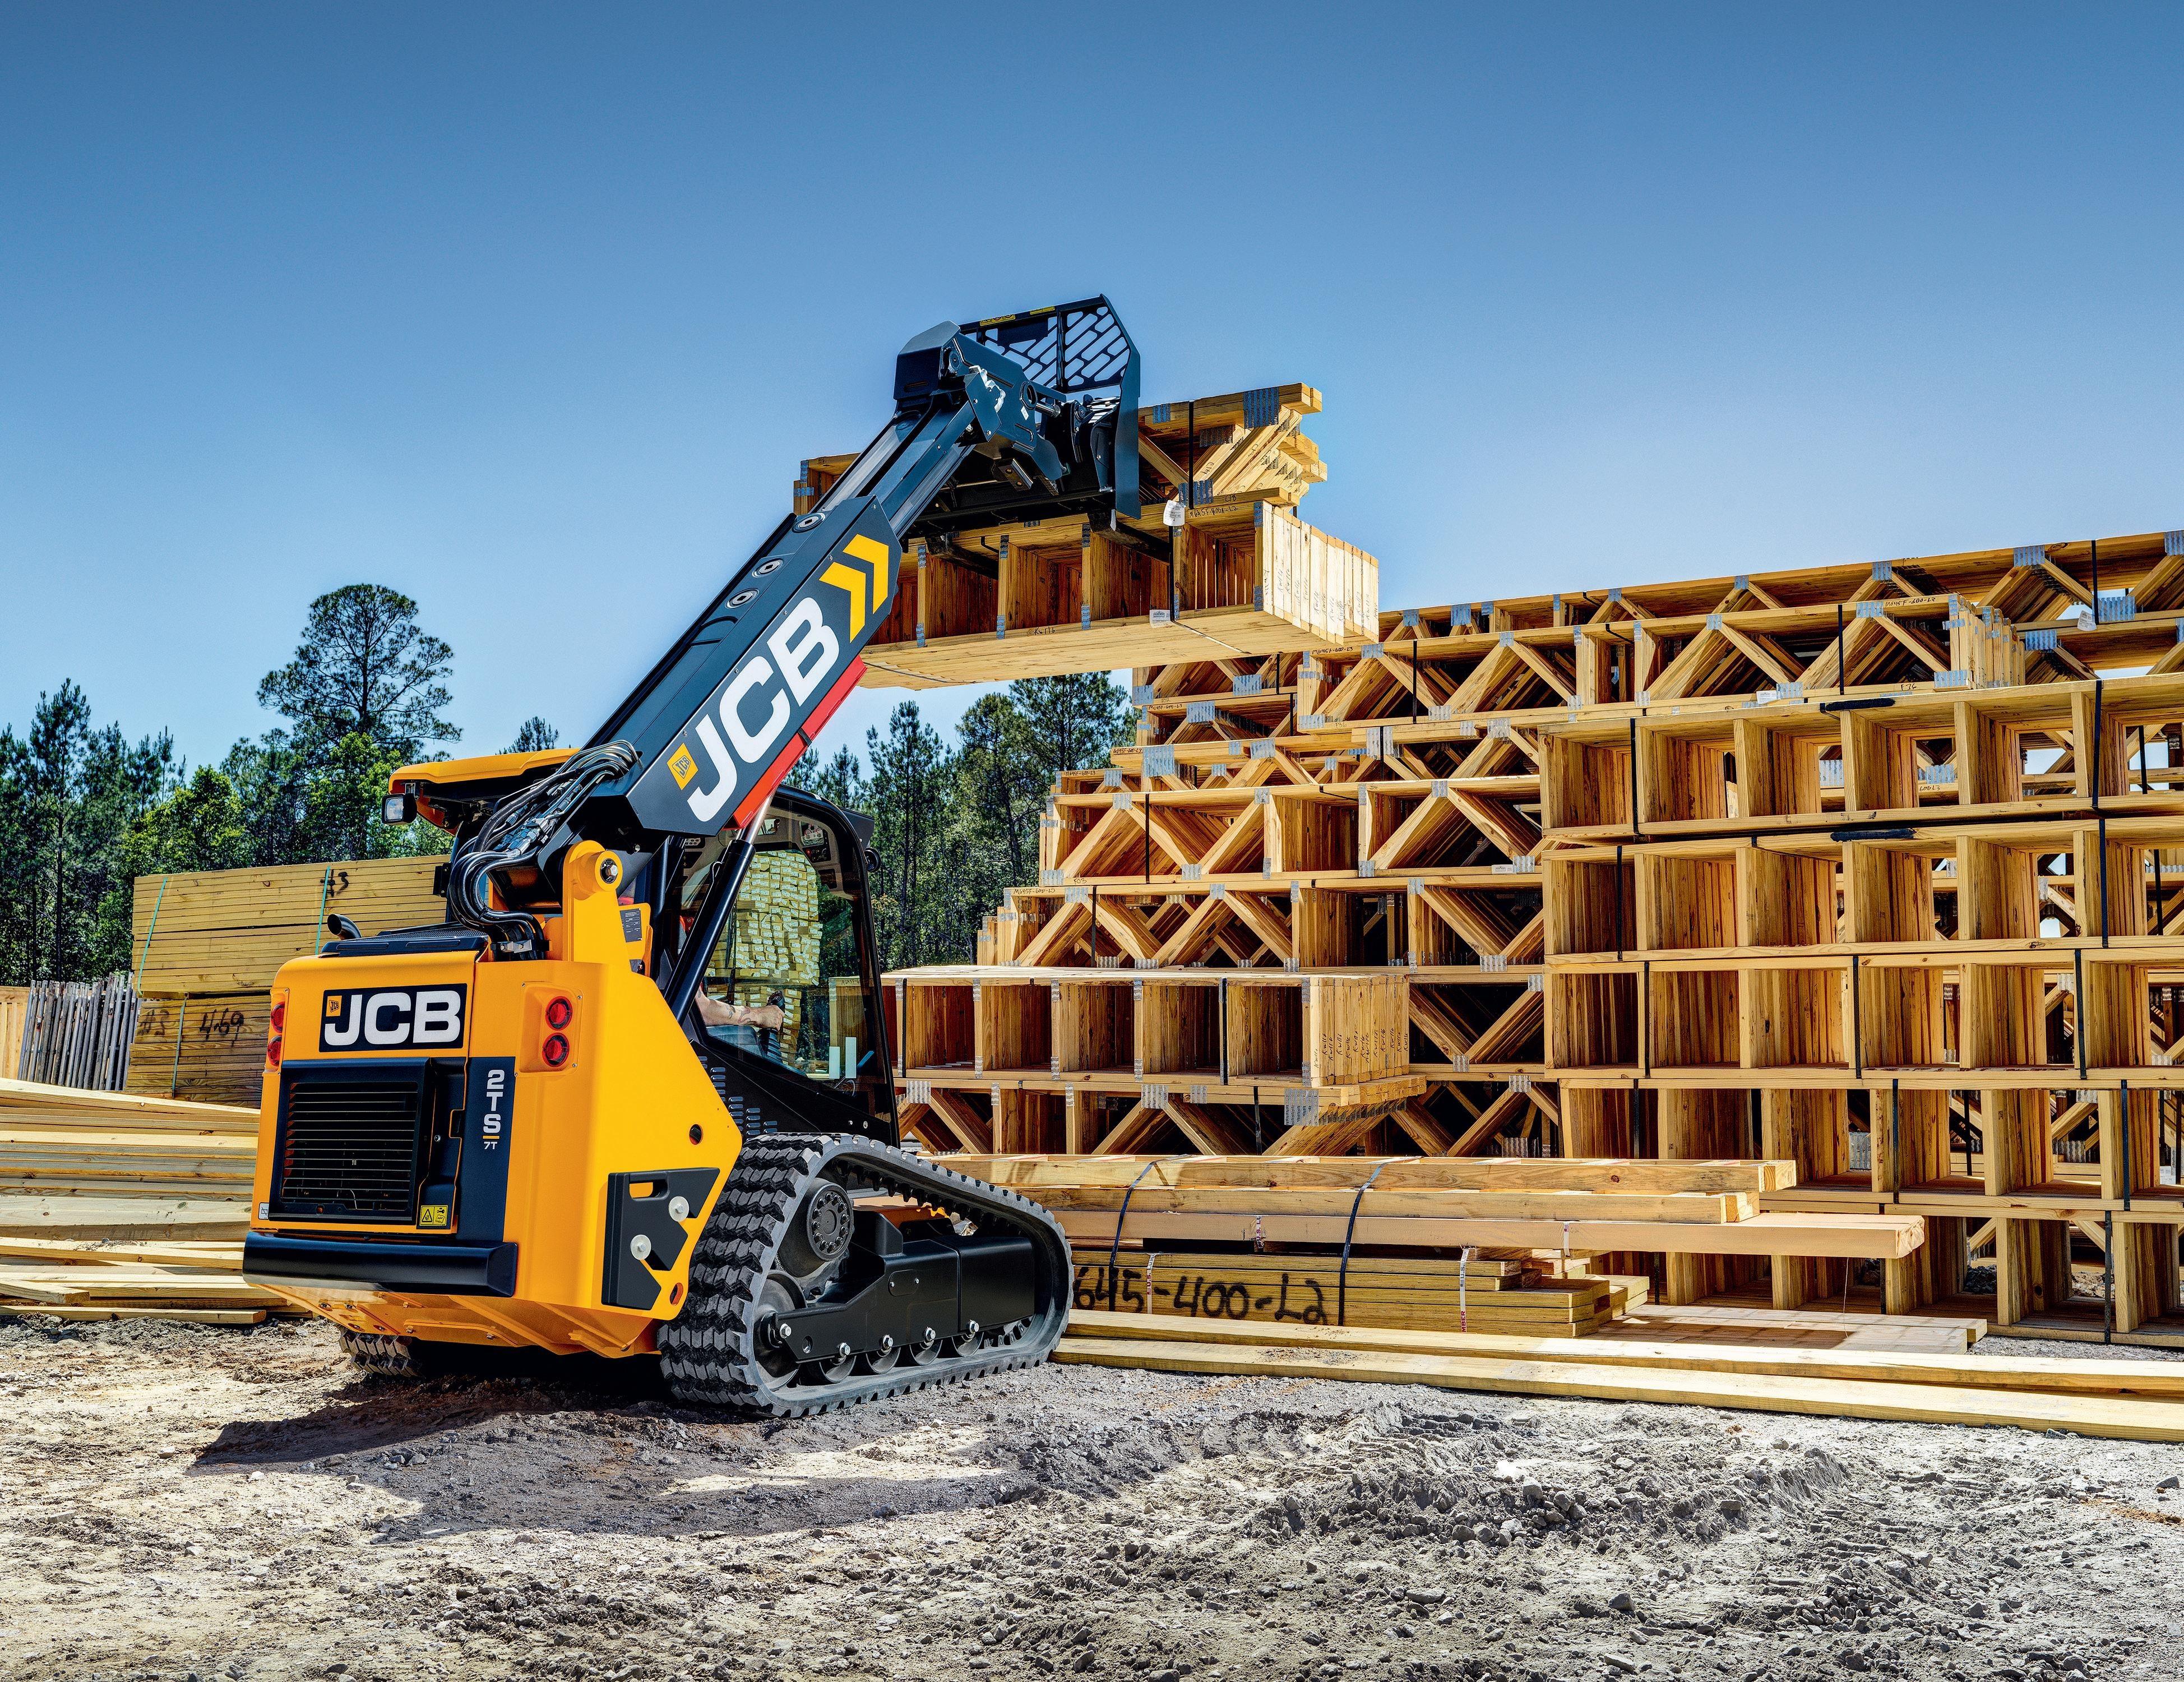 Page 12 of In-depth report: Reimagining the compact track loader